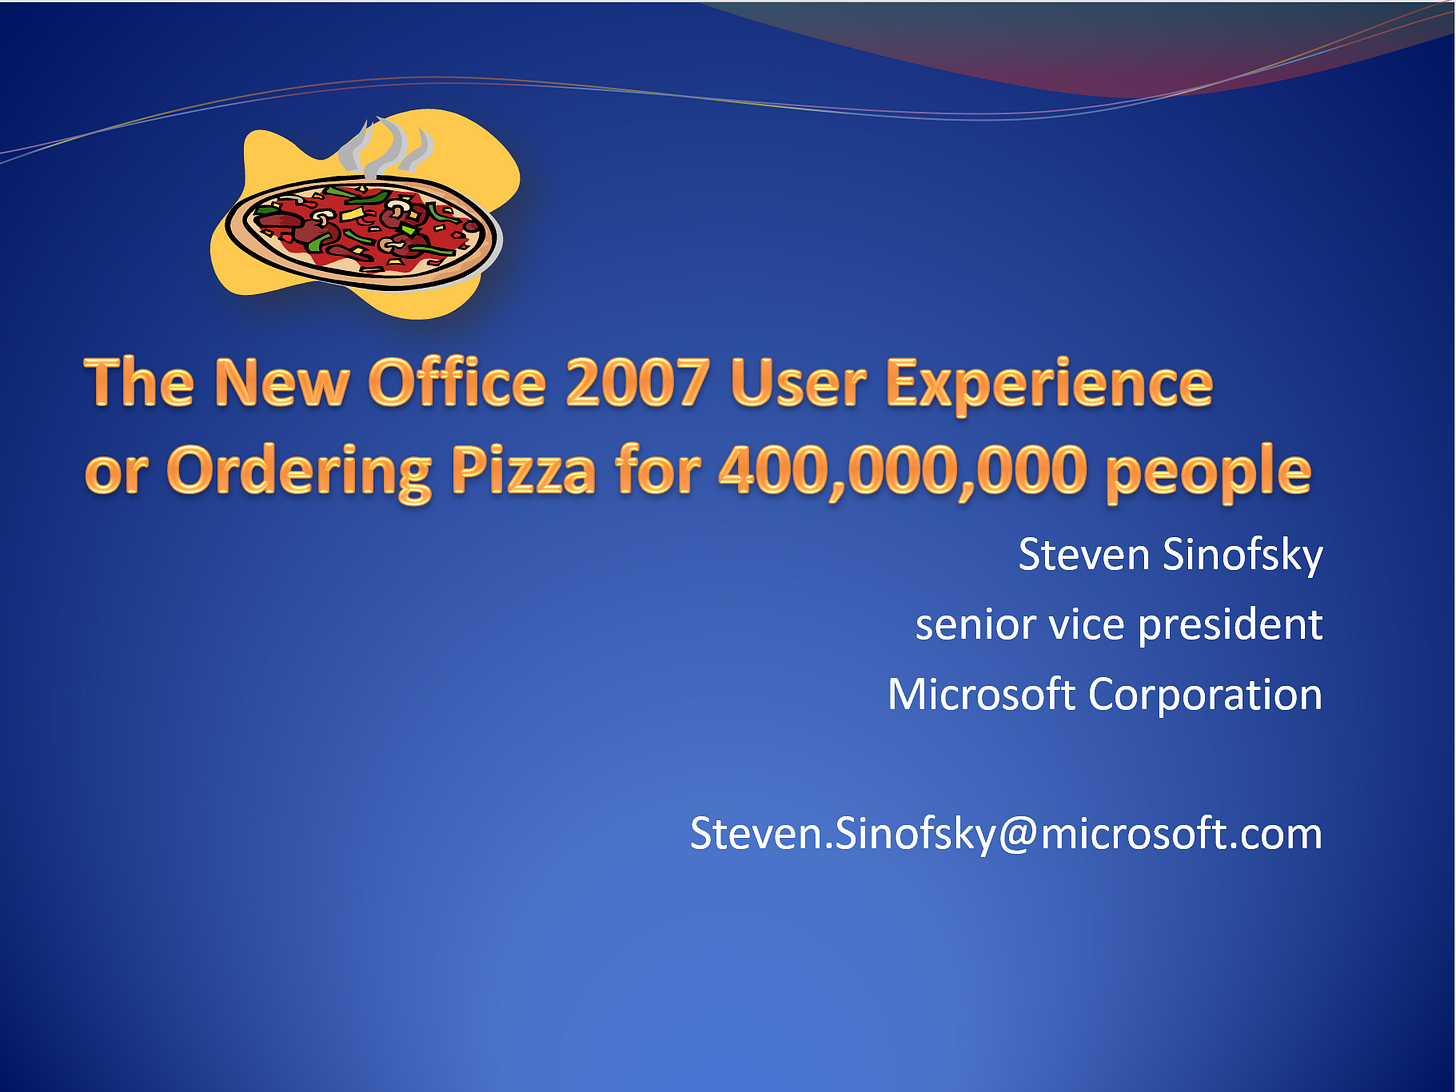 """Powerpoint slide """"The New Office 2007 User Experience or Ordering Pizza for 400,000,000 people"""""""